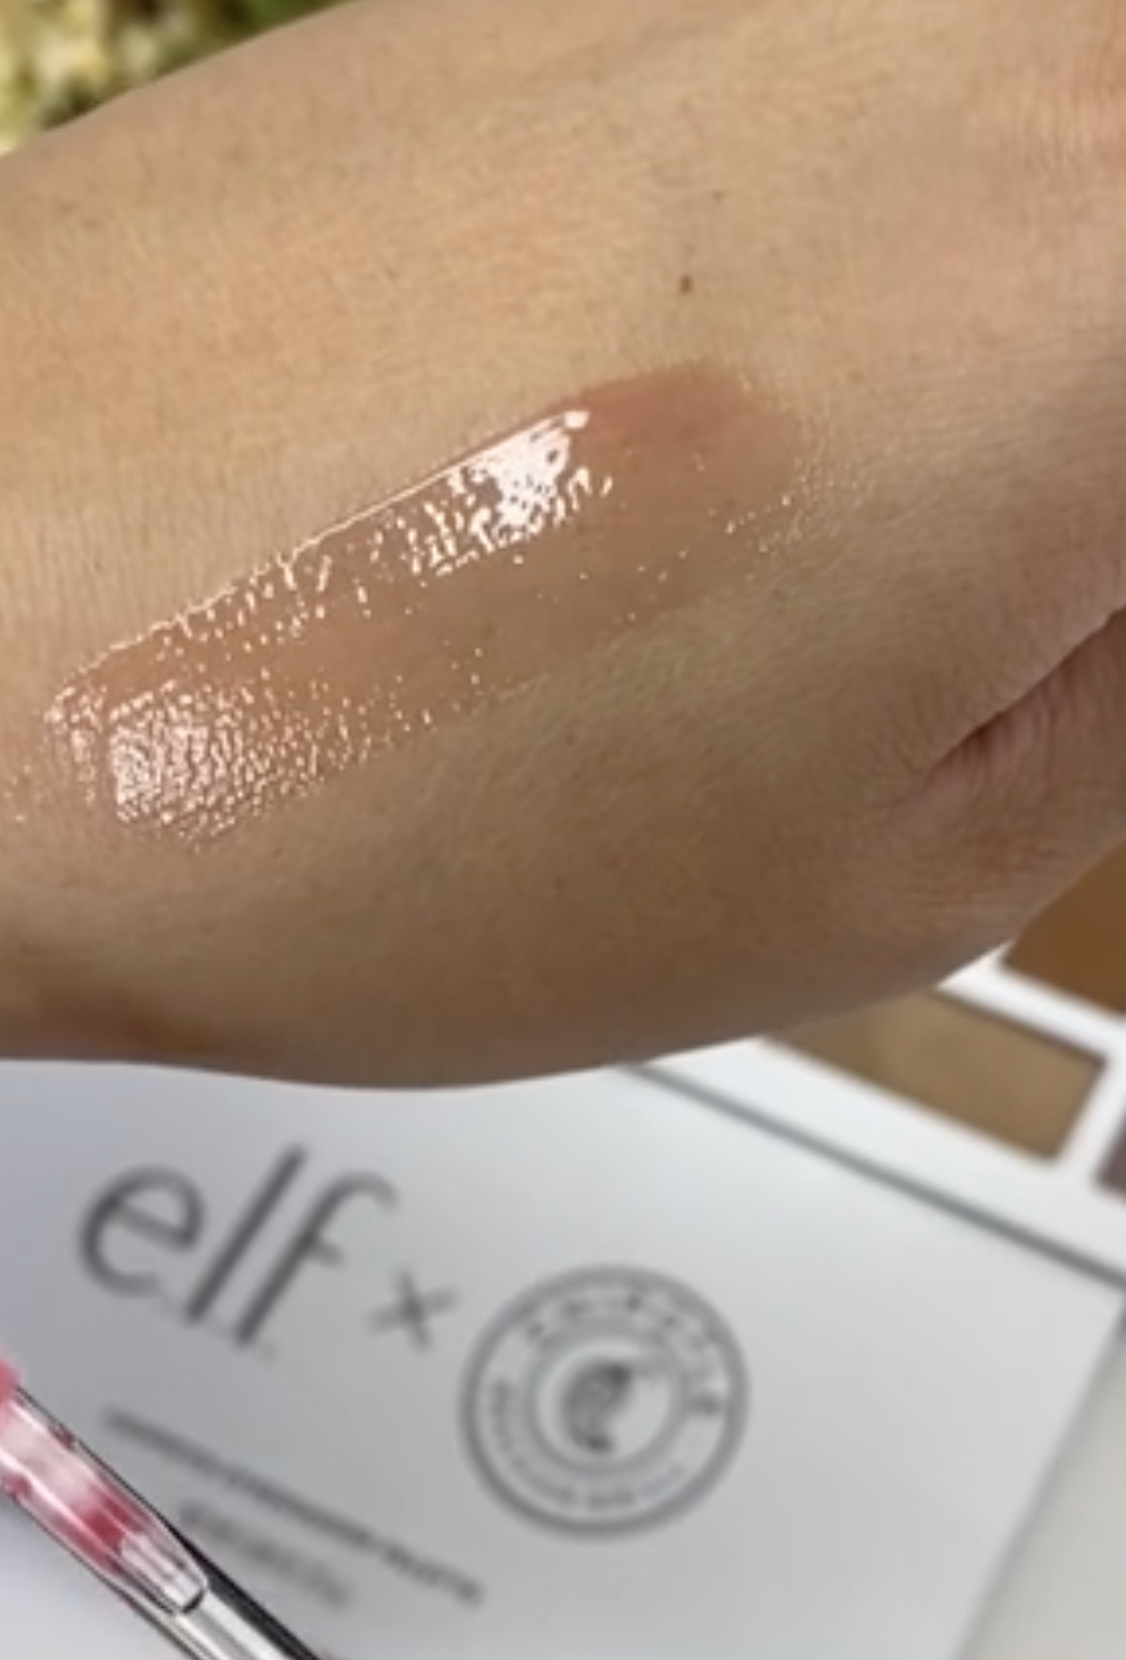 A transparent red sheer gloss on a person's hand